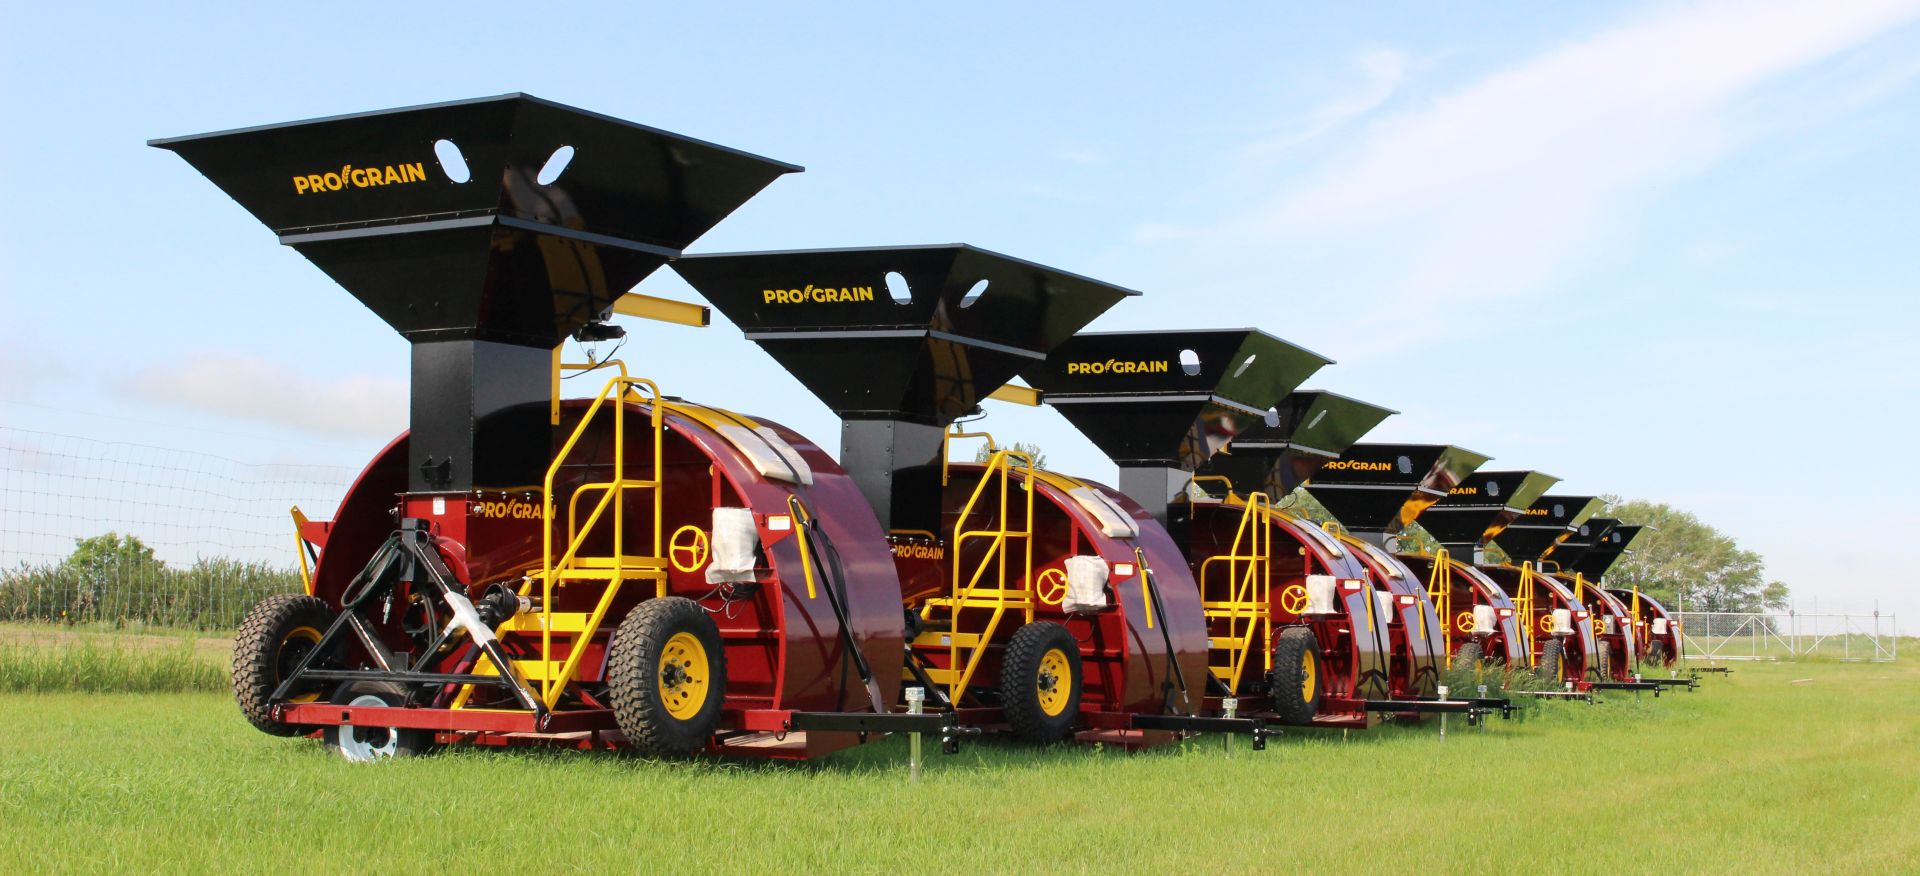 Pro Grain Grain baggers lined up in a row